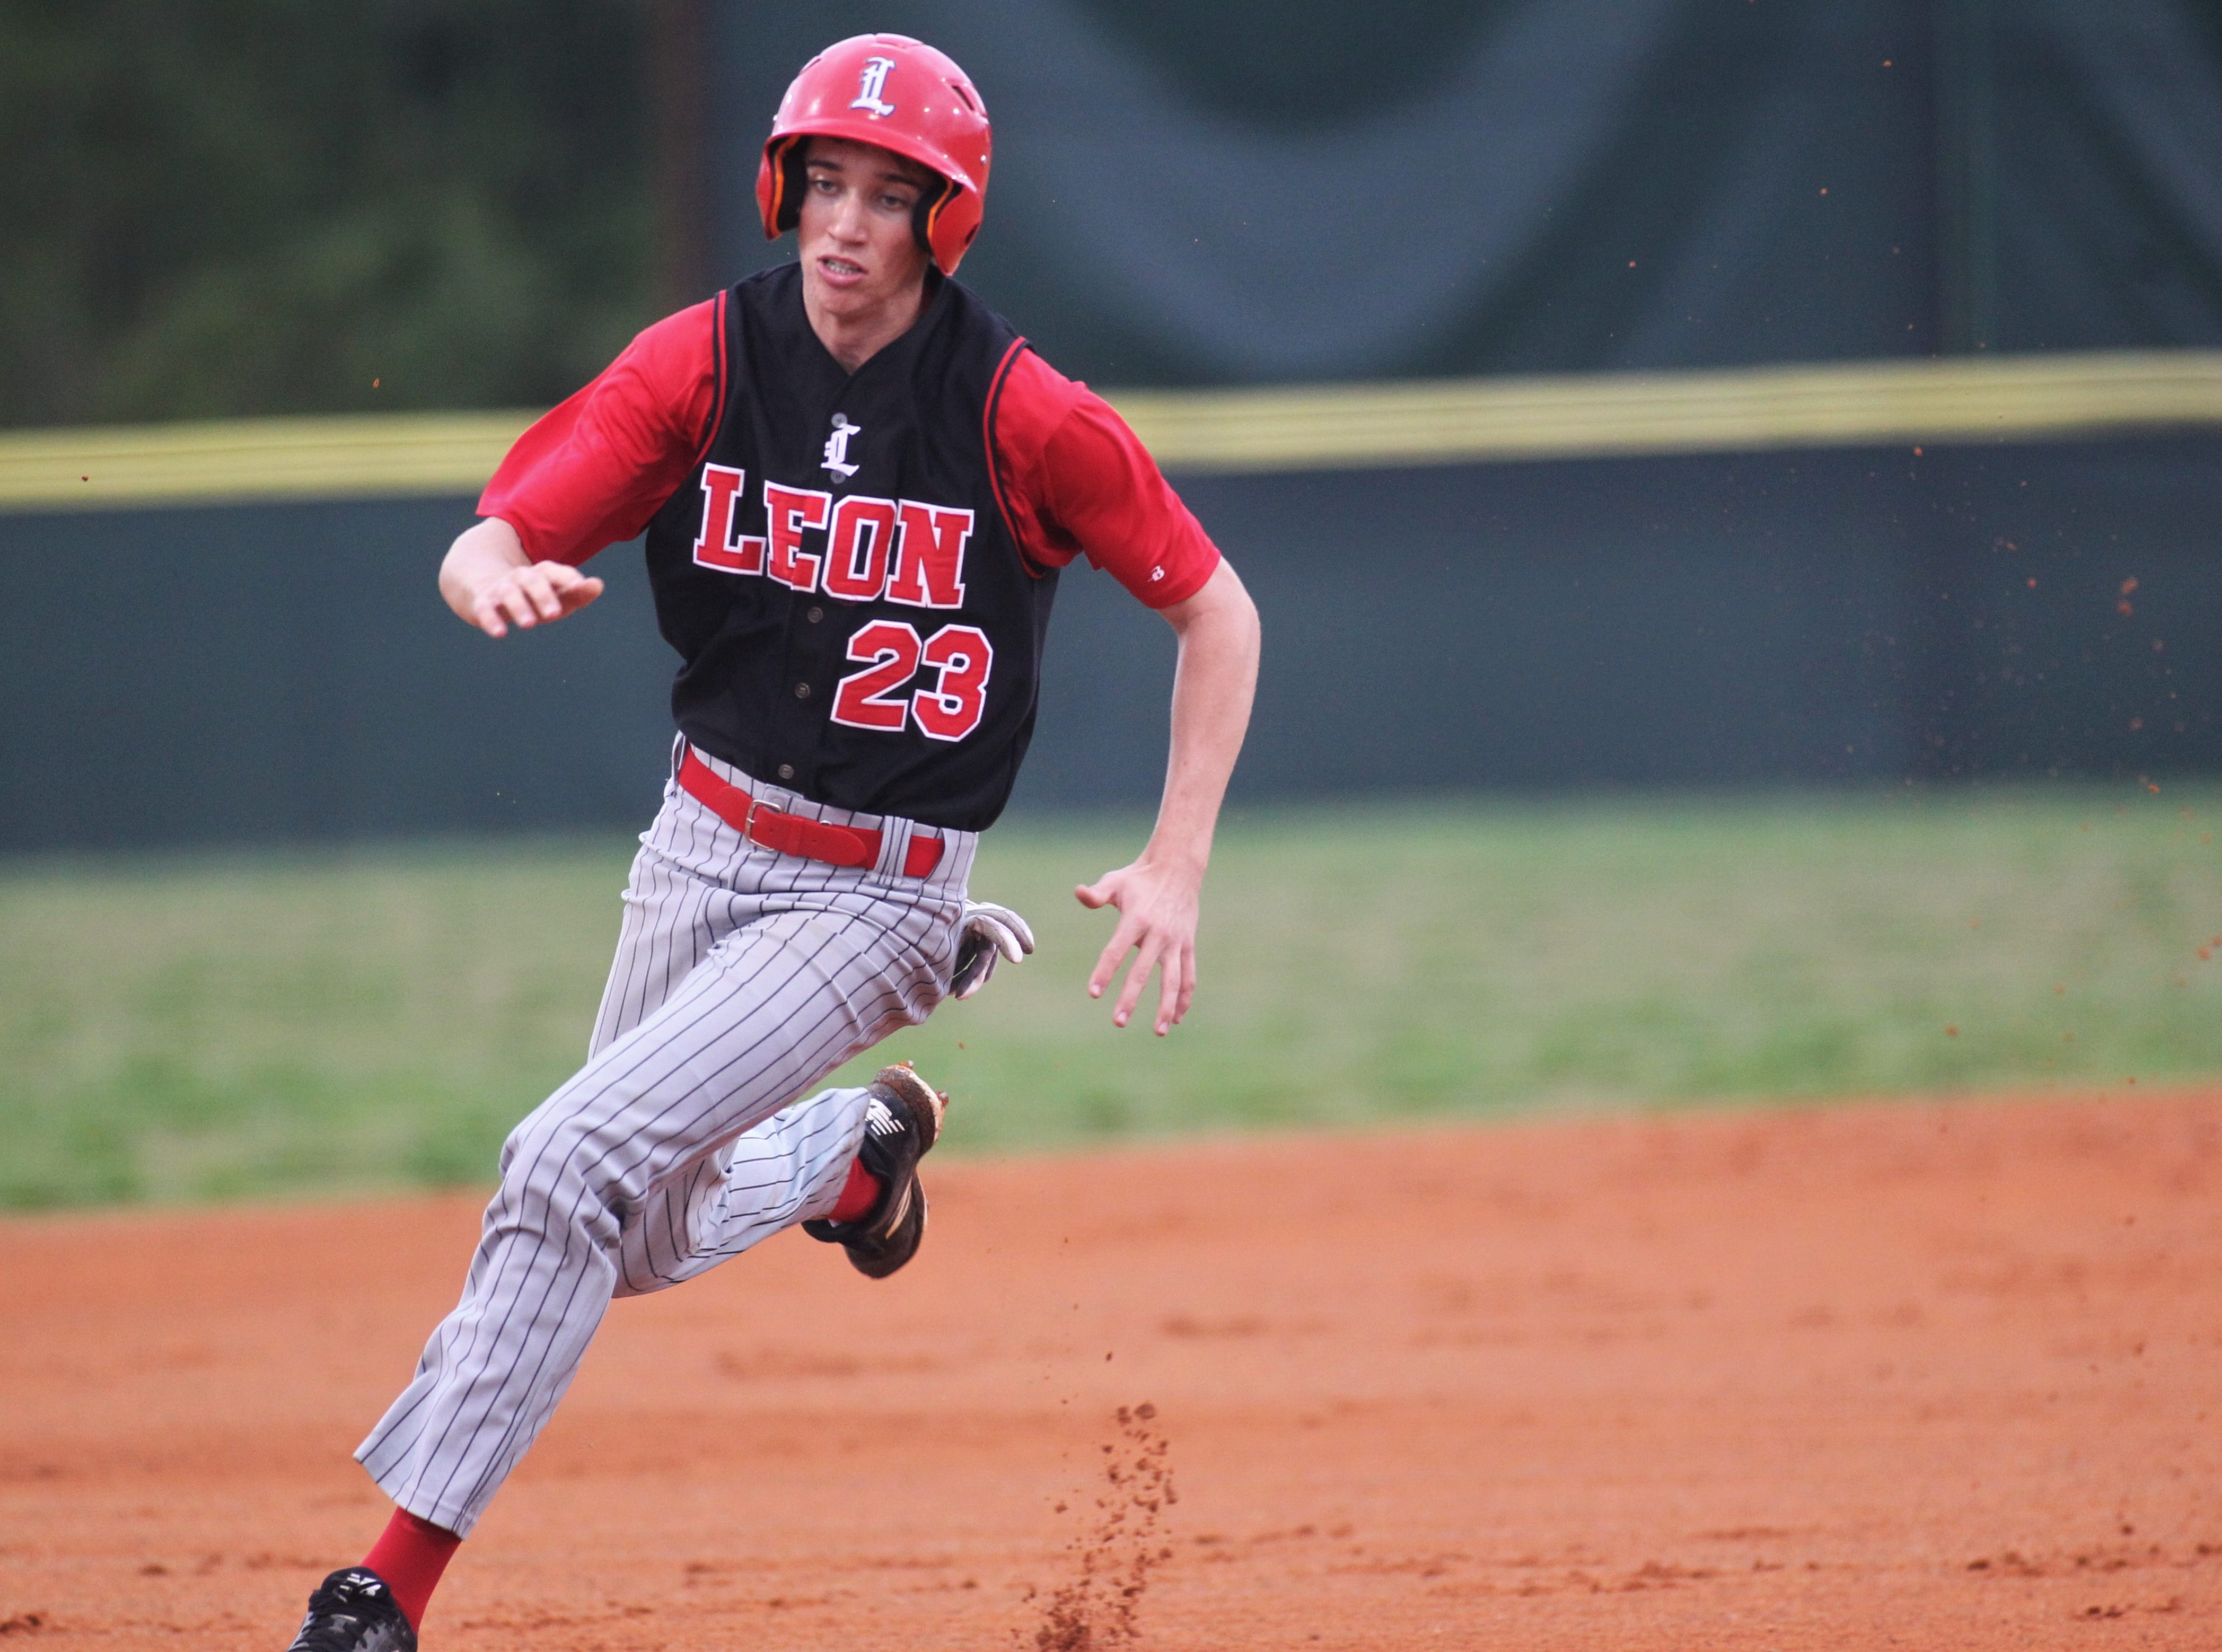 Leon junior Matt Williams races to third base as Chiles won an 11-6 home game against Leon on Friday, April 5, 2019, to force a season split. The Lions won 3-0 earlier in the week.